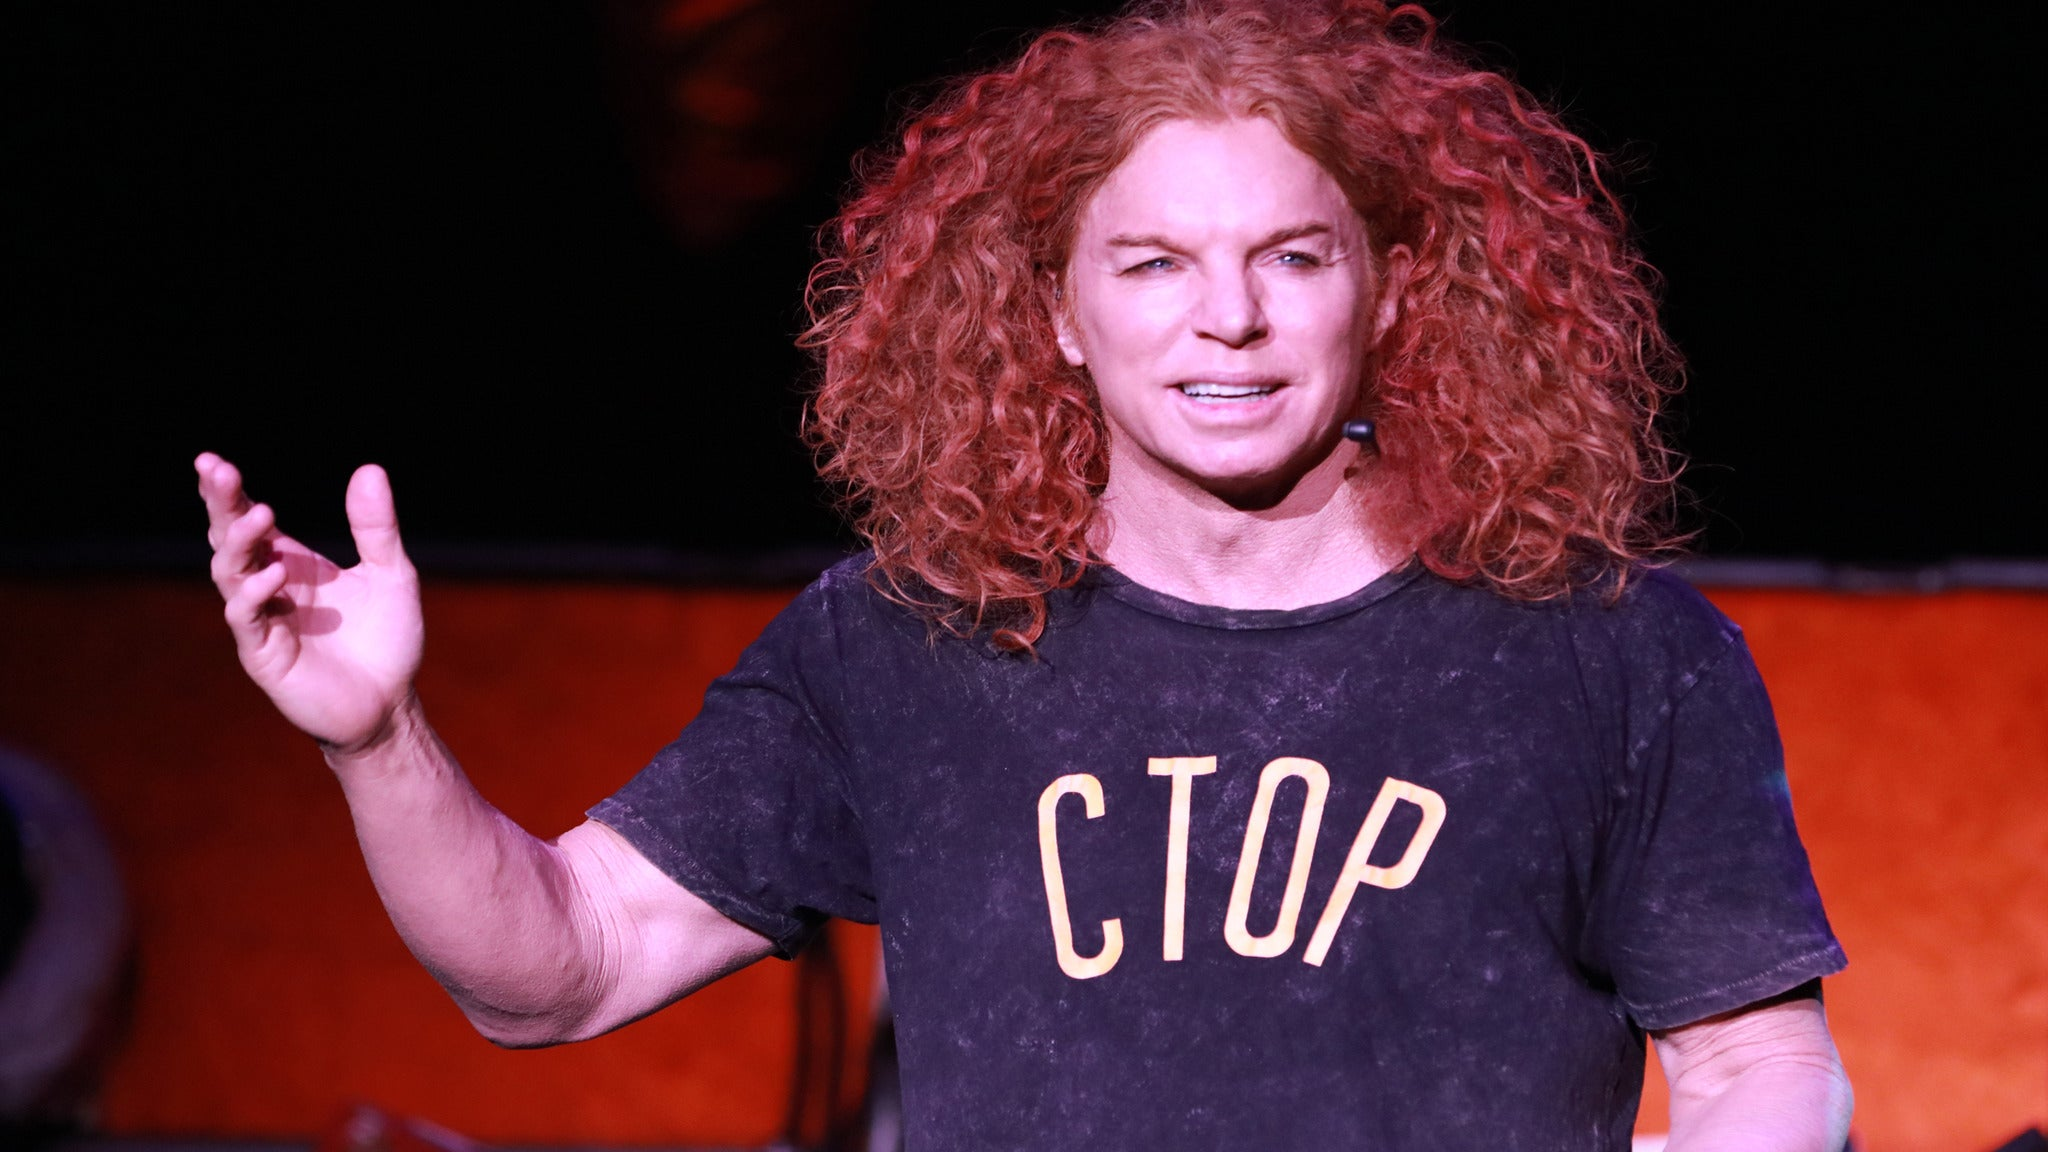 Carrot Top at Saban Theatre